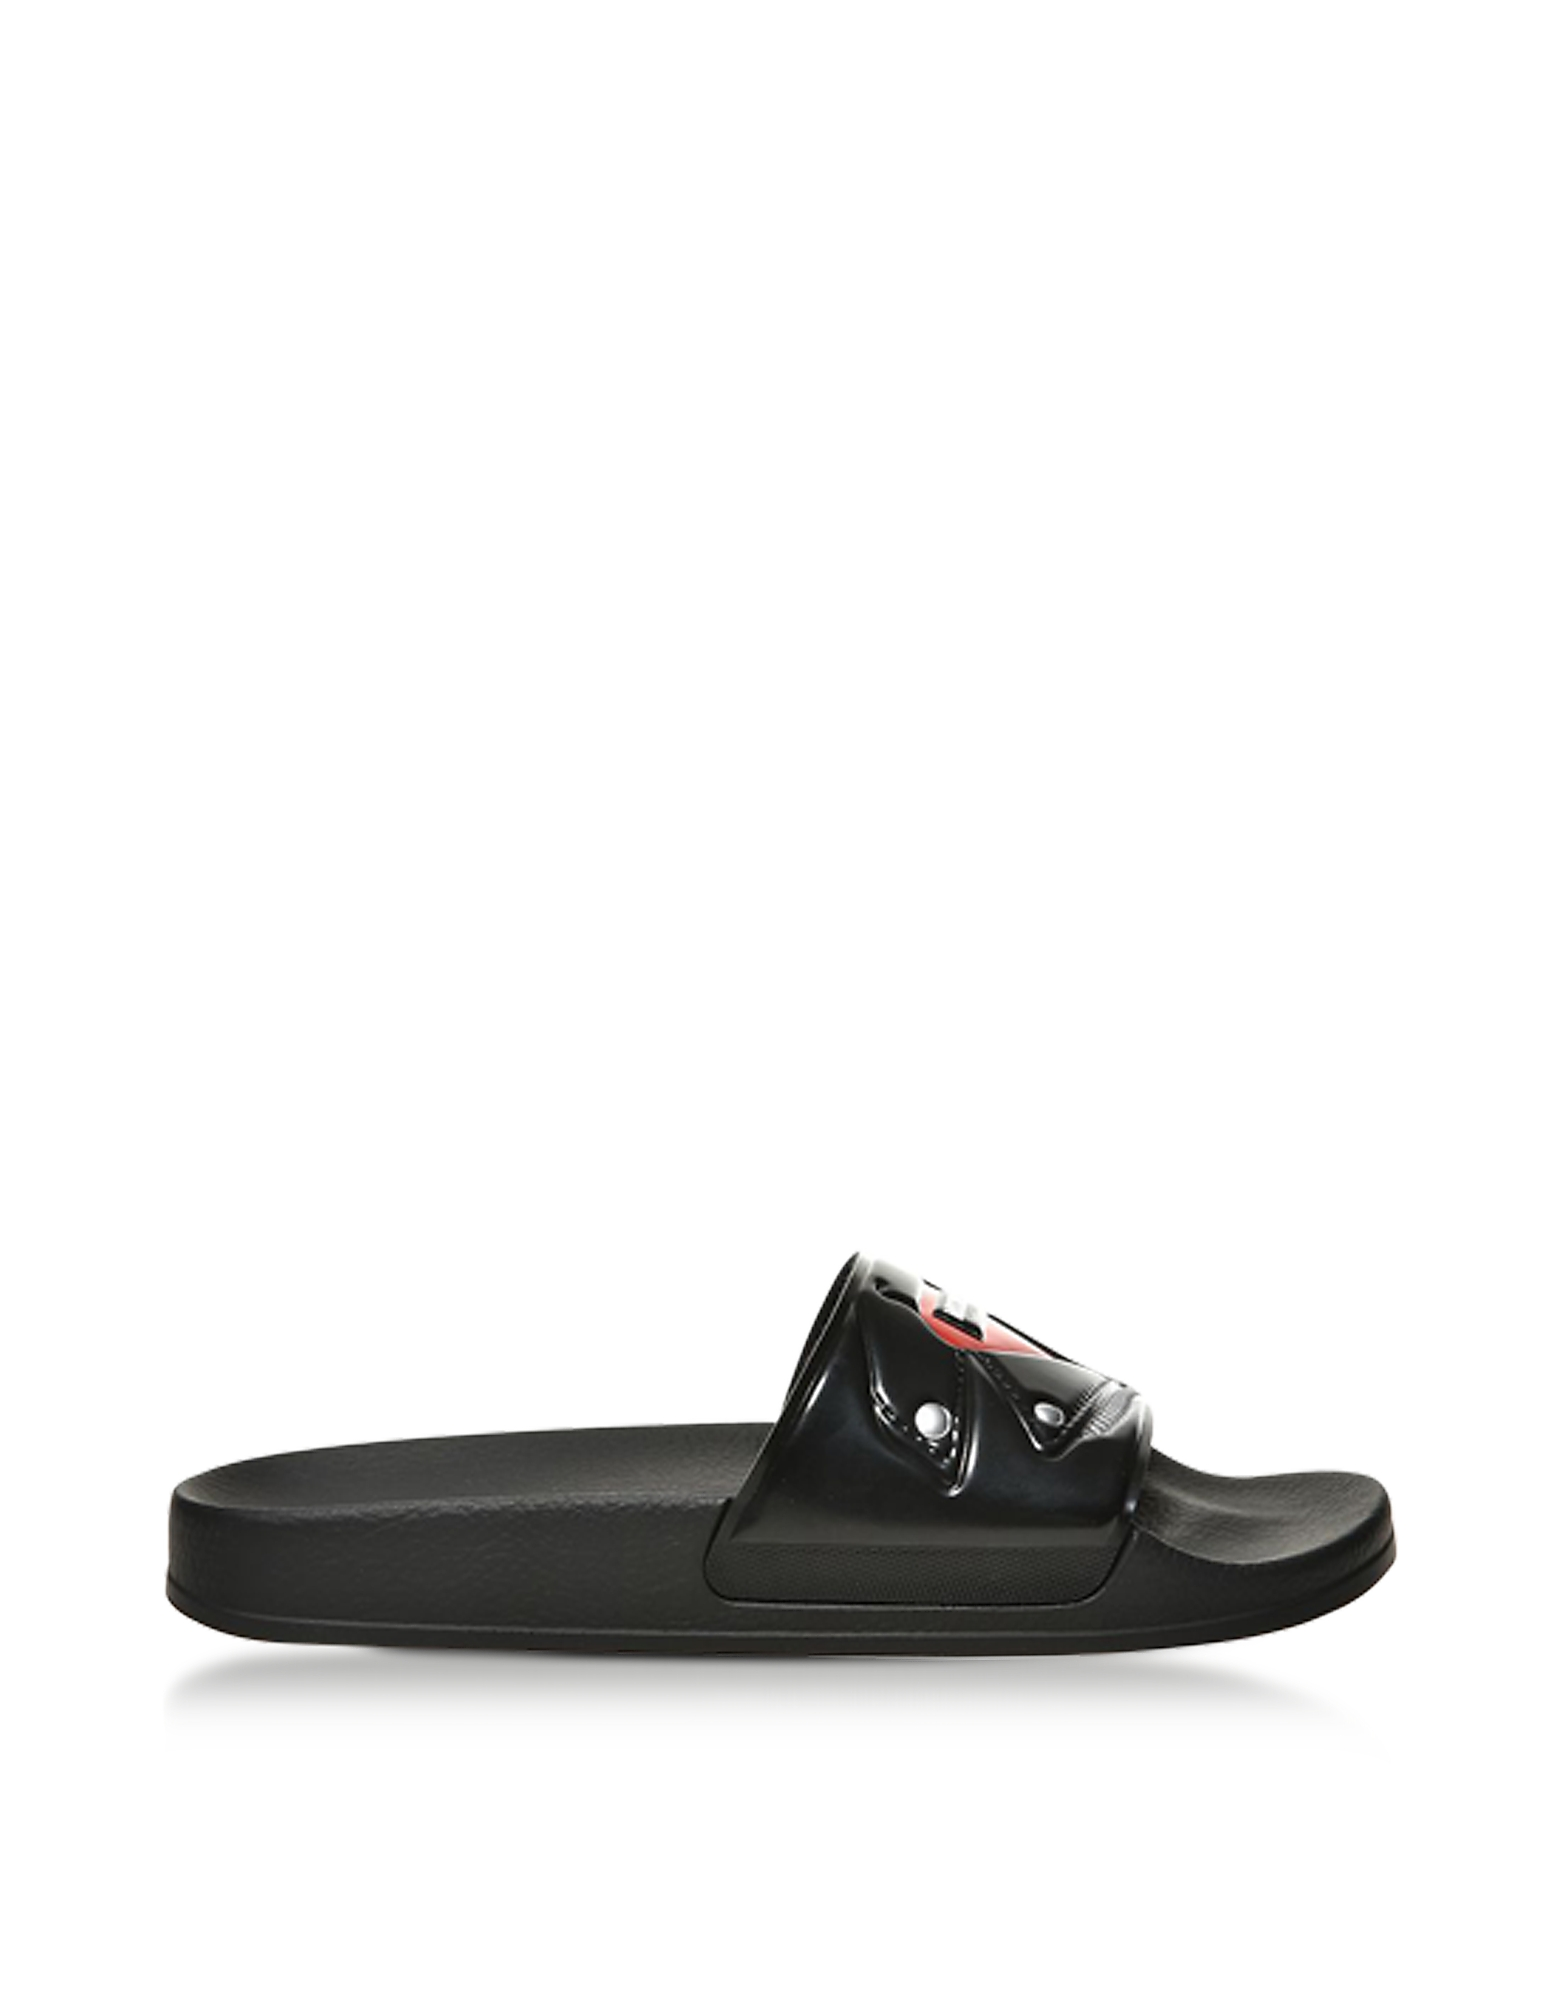 Moschino Shoes, Black Biker Jacket Printed Pvc Pool Sandals